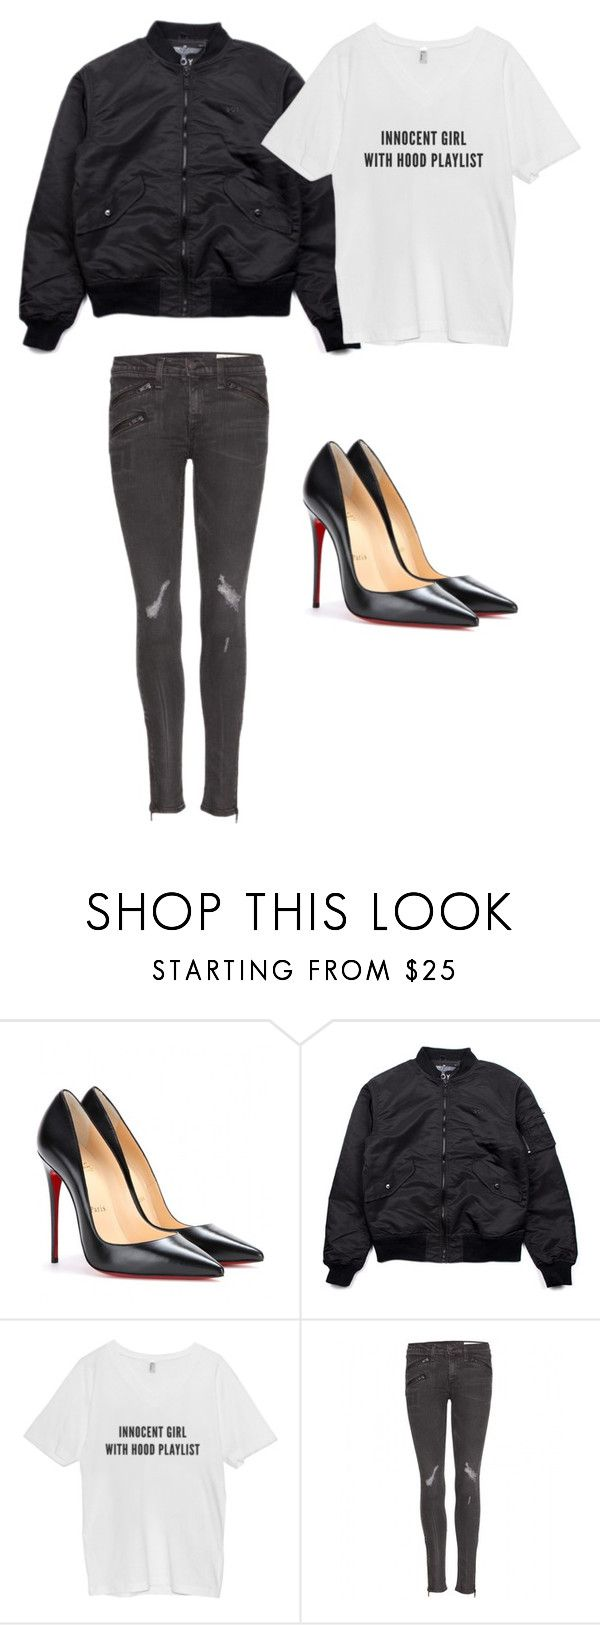 """Untitled #304"" by eaubleue ❤ liked on Polyvore featuring Christian Louboutin, BOY London and rag & bone"